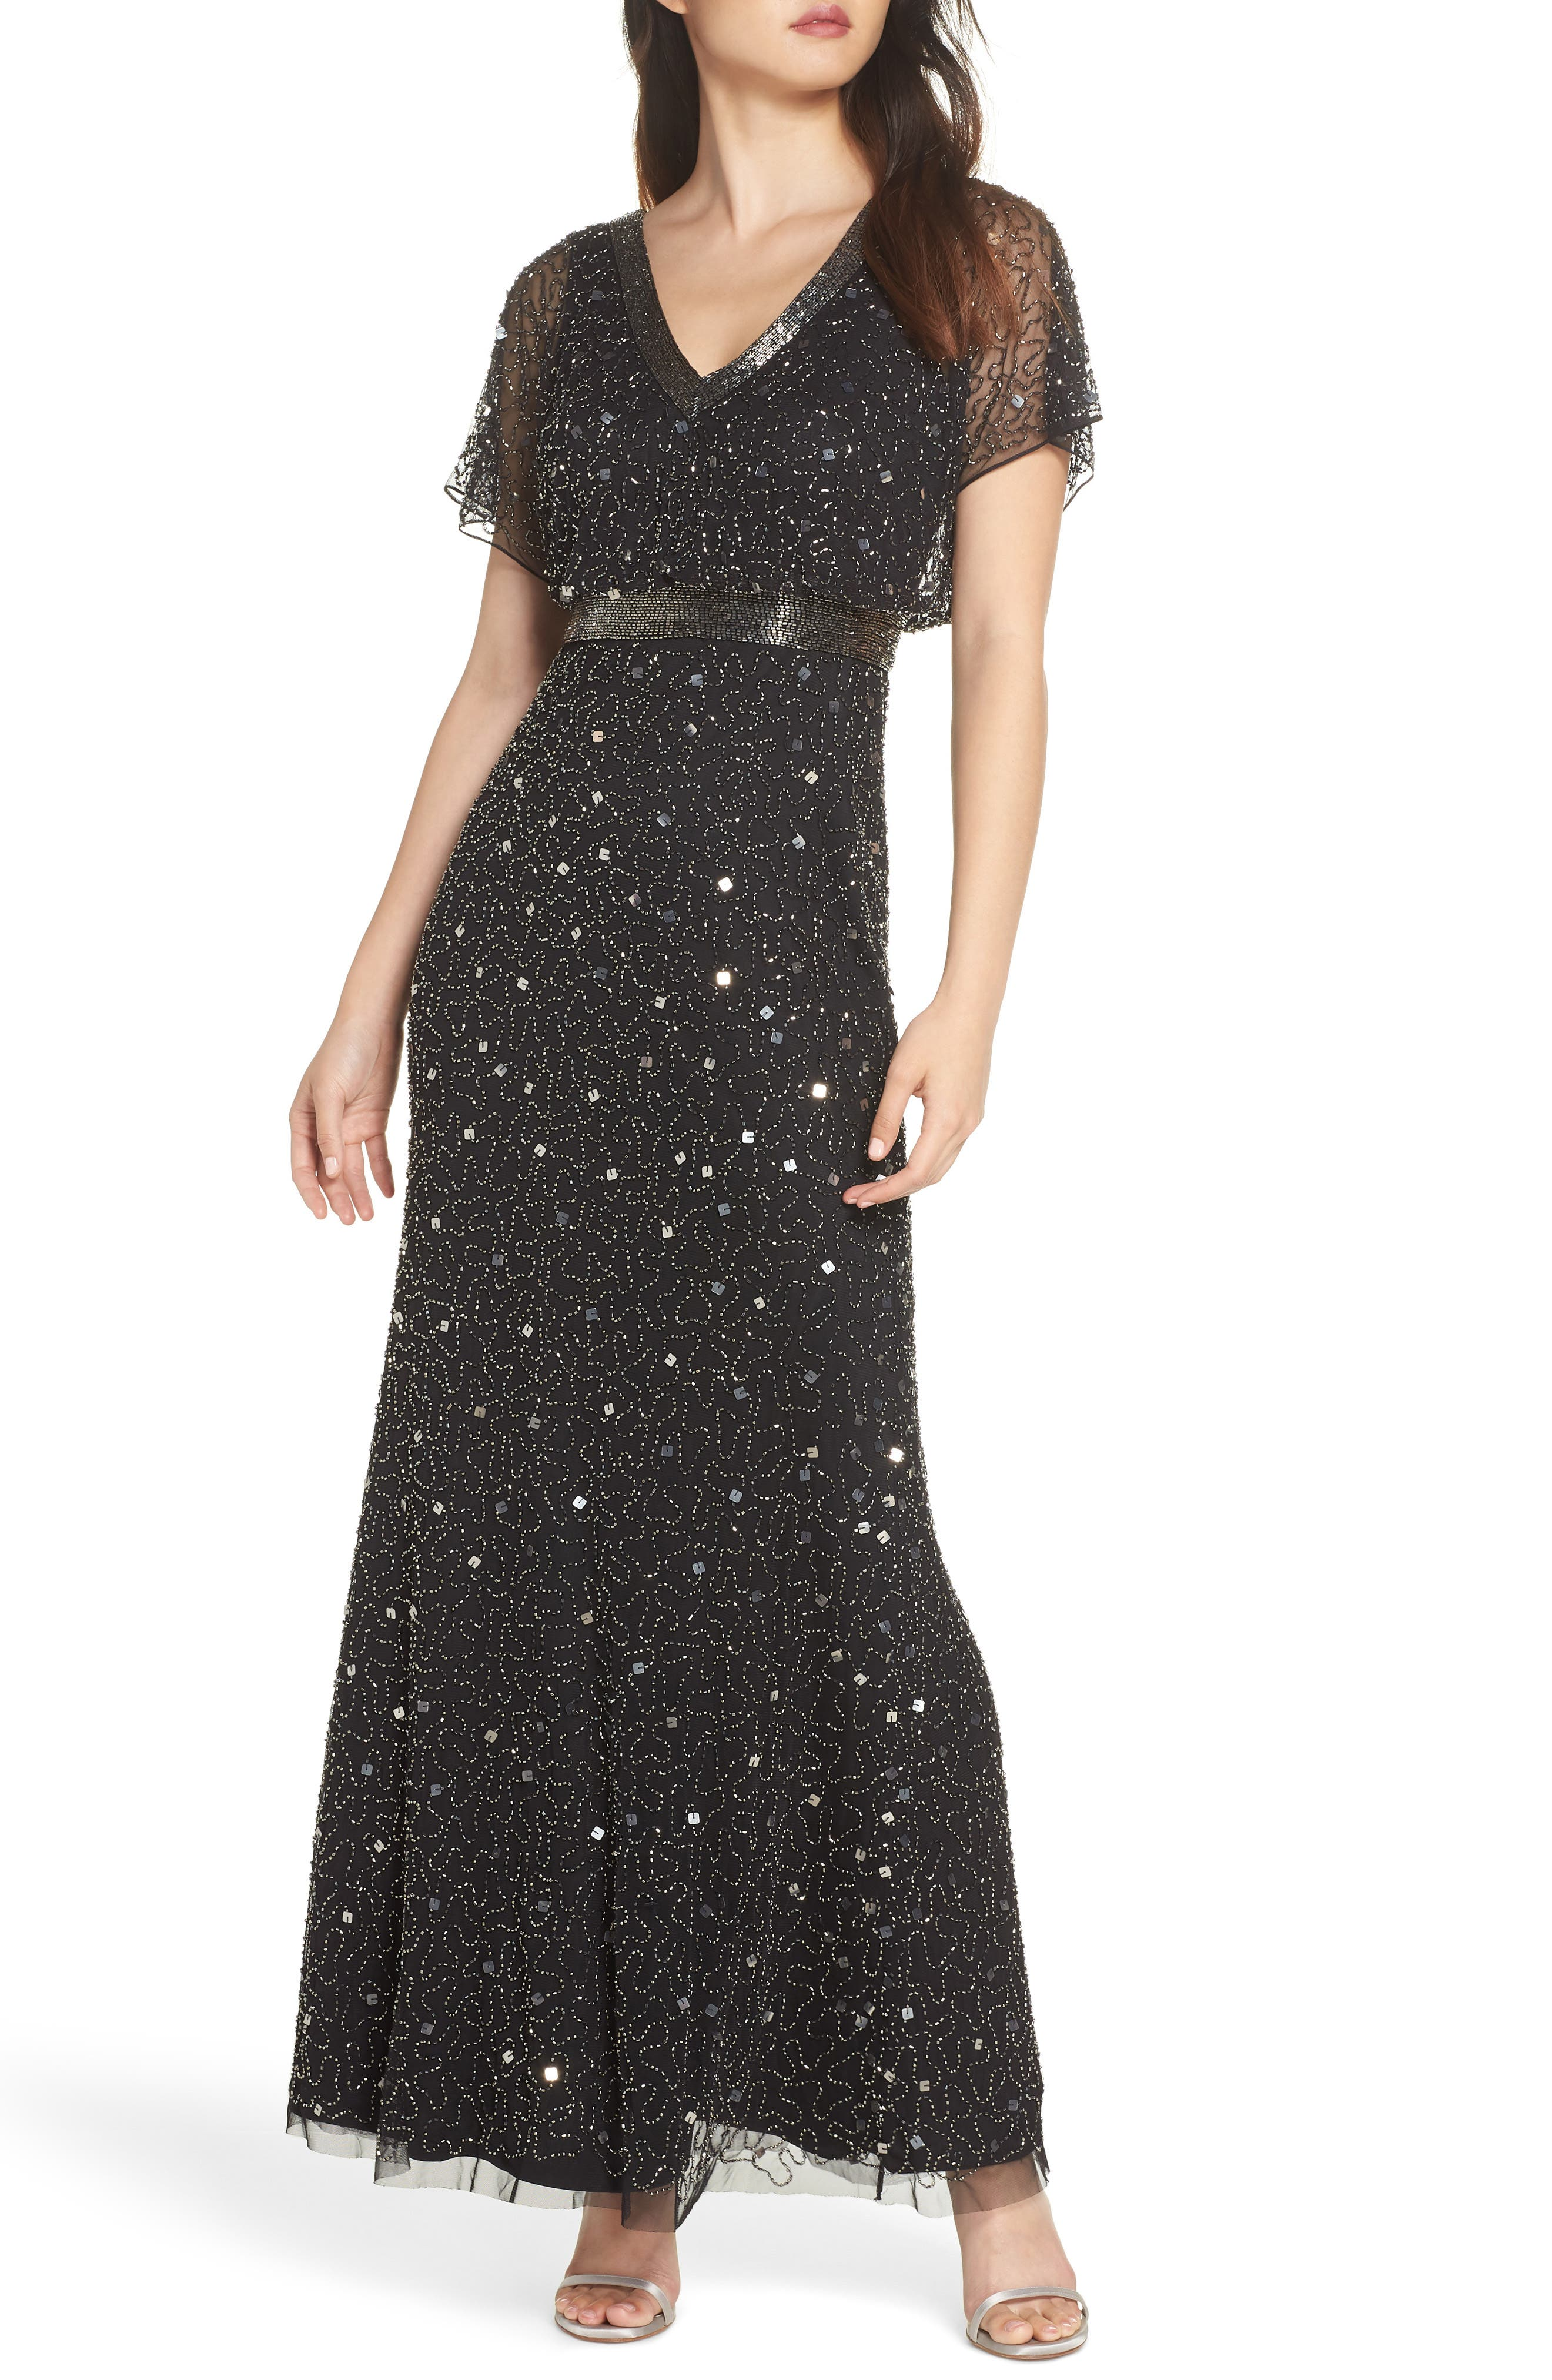 1930s Dresses | 30s Art Deco Dress Womens Adrianna Papell Bead Embellished Dress Size 16 - Black $197.40 AT vintagedancer.com